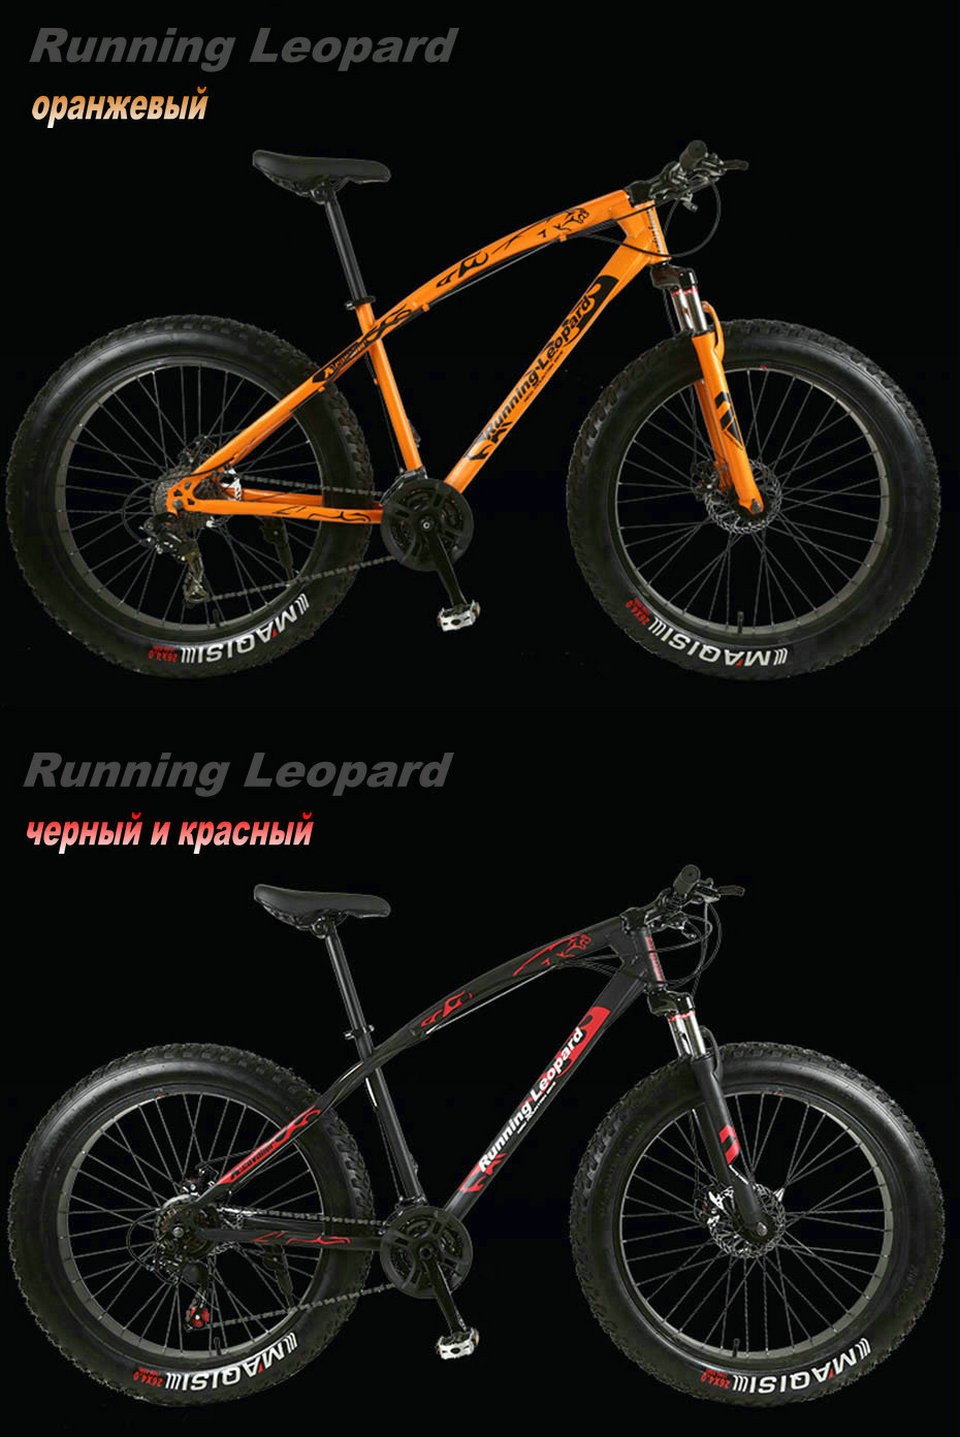 HTB1sDe4bv9TBuNjy0Fcq6zeiFXa1 Running Leopard 7/21/24 Speed 26x4.0 Fat bike Mountain Bike Snow Bicycle Shock Suspension Fork Free delivery Russia bicycle